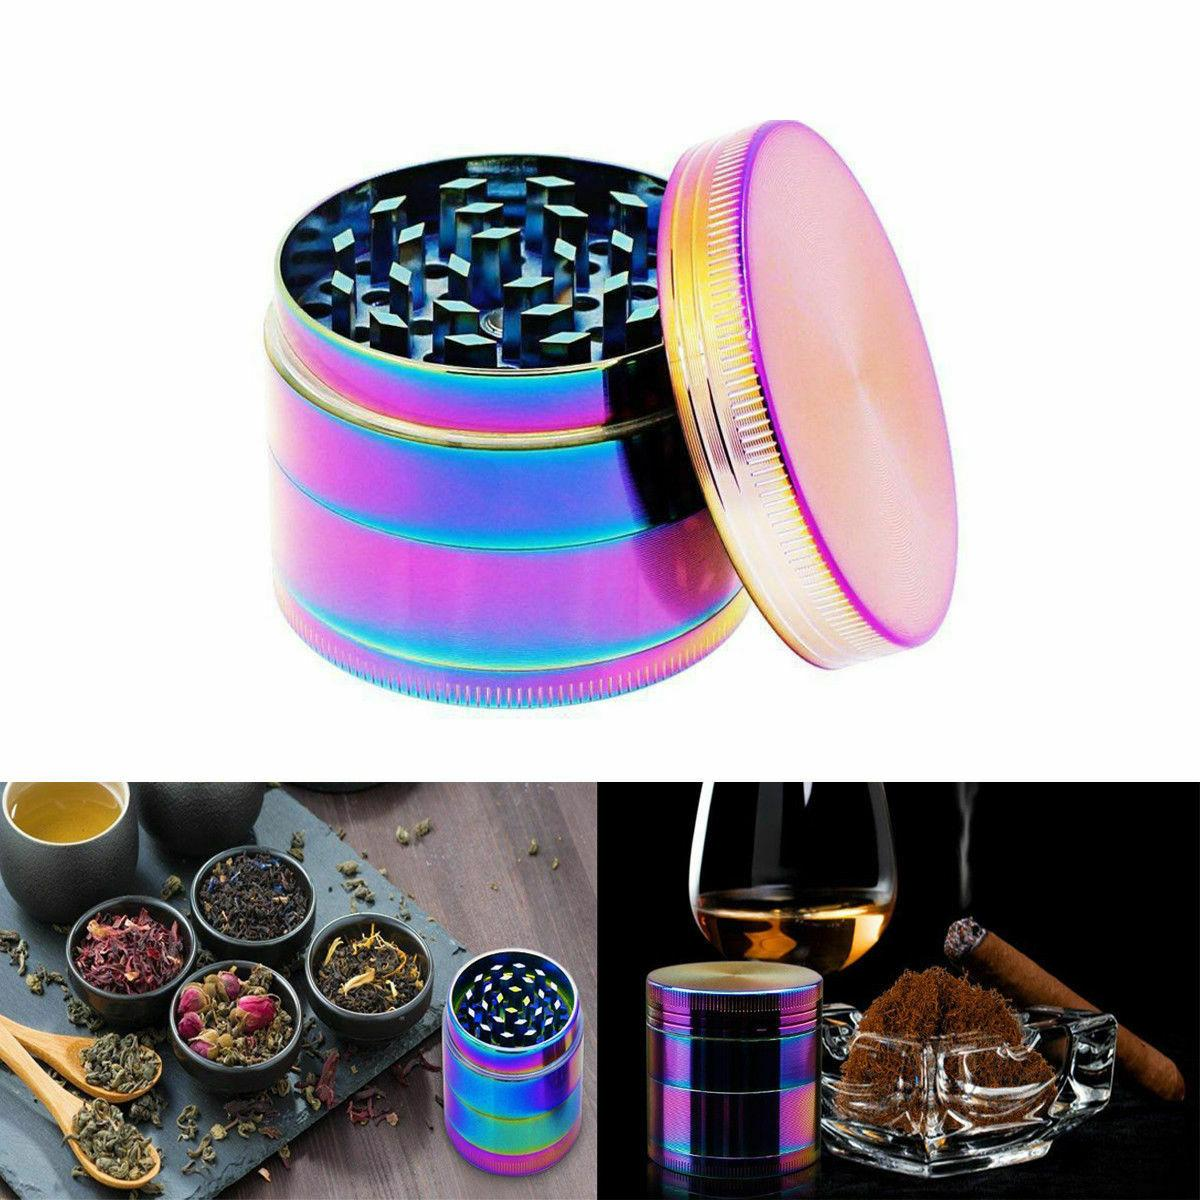 Large Colorful Spice Herb Weed Grinder-5 with